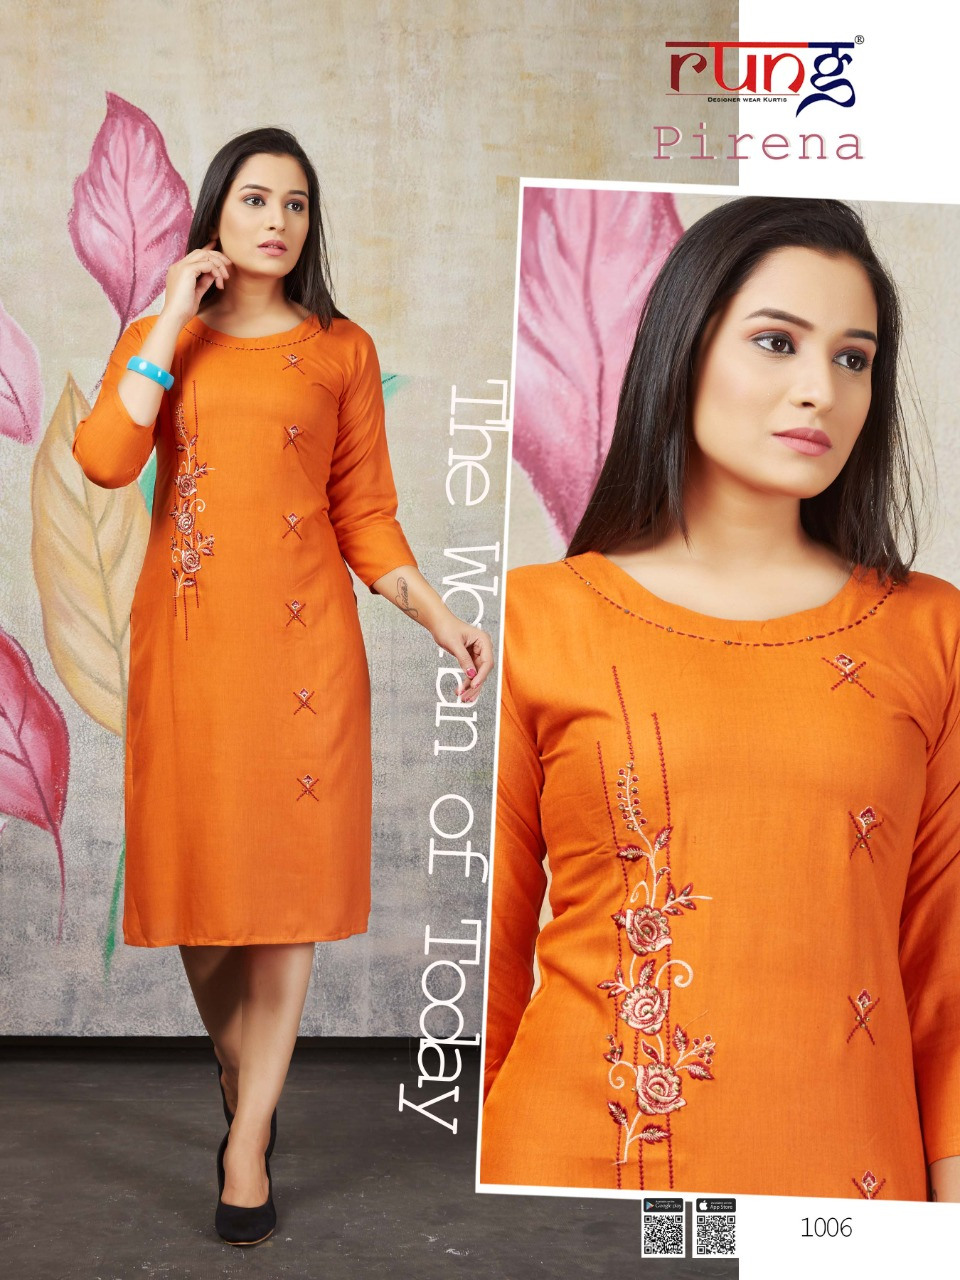 Rung Pirena Beautiful Liquid Rayon Handwork Kurti Catalog at Wholesale rate